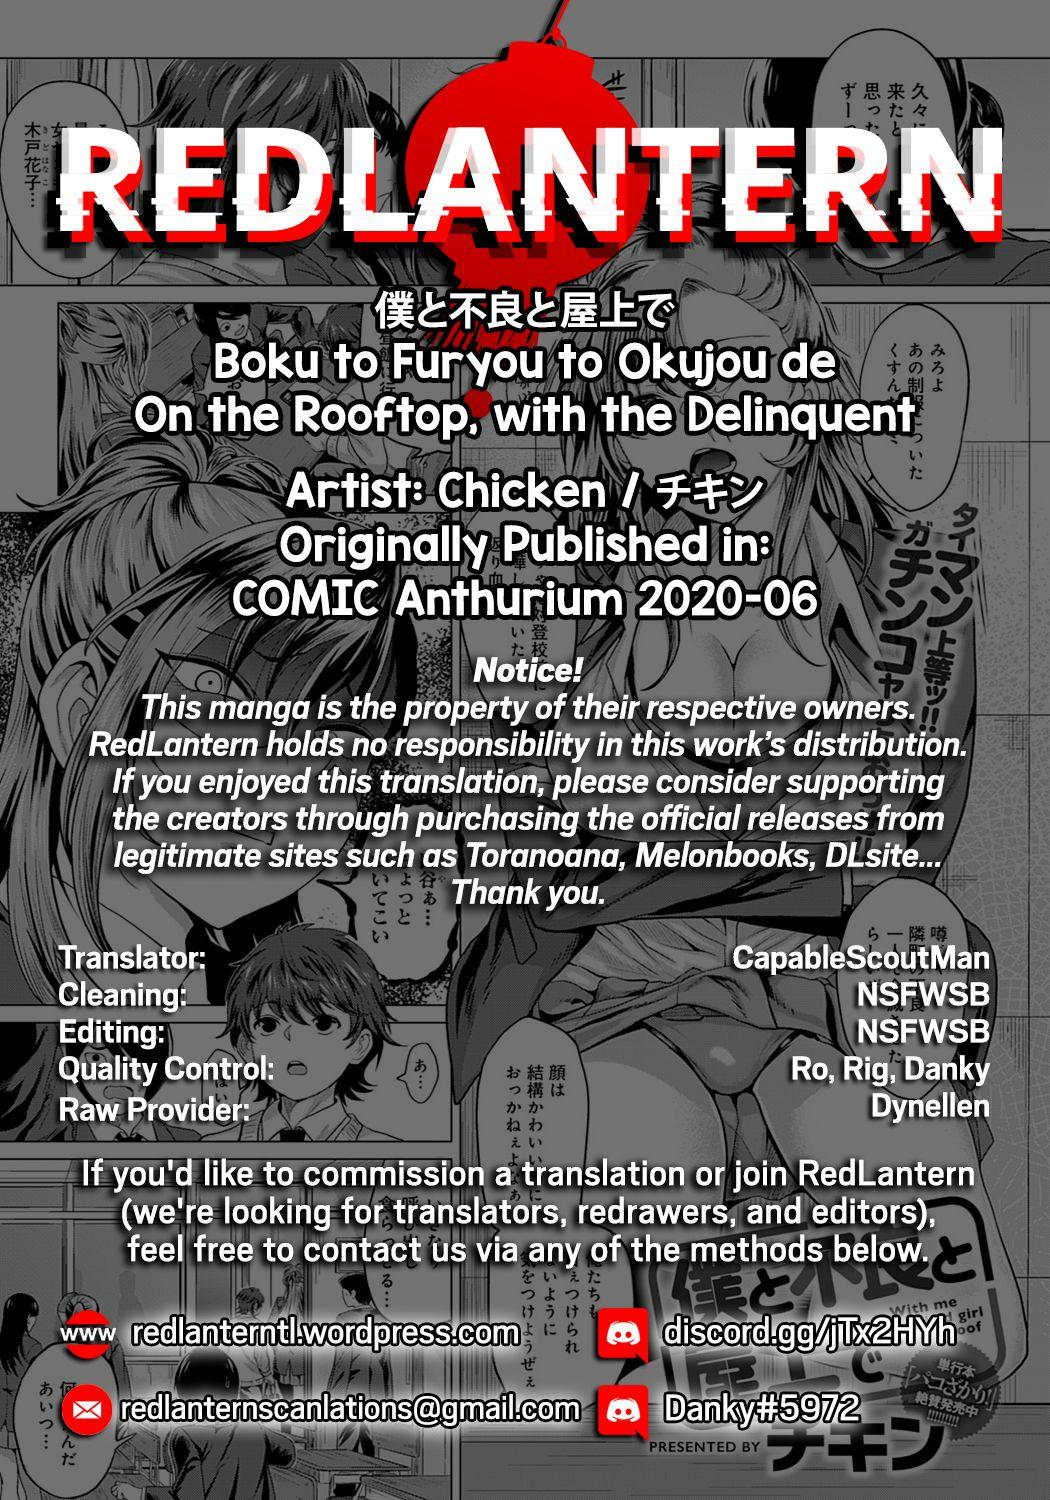 Boku to Furyou to Okujou de | On the Rooftop, with the Delinquent 31